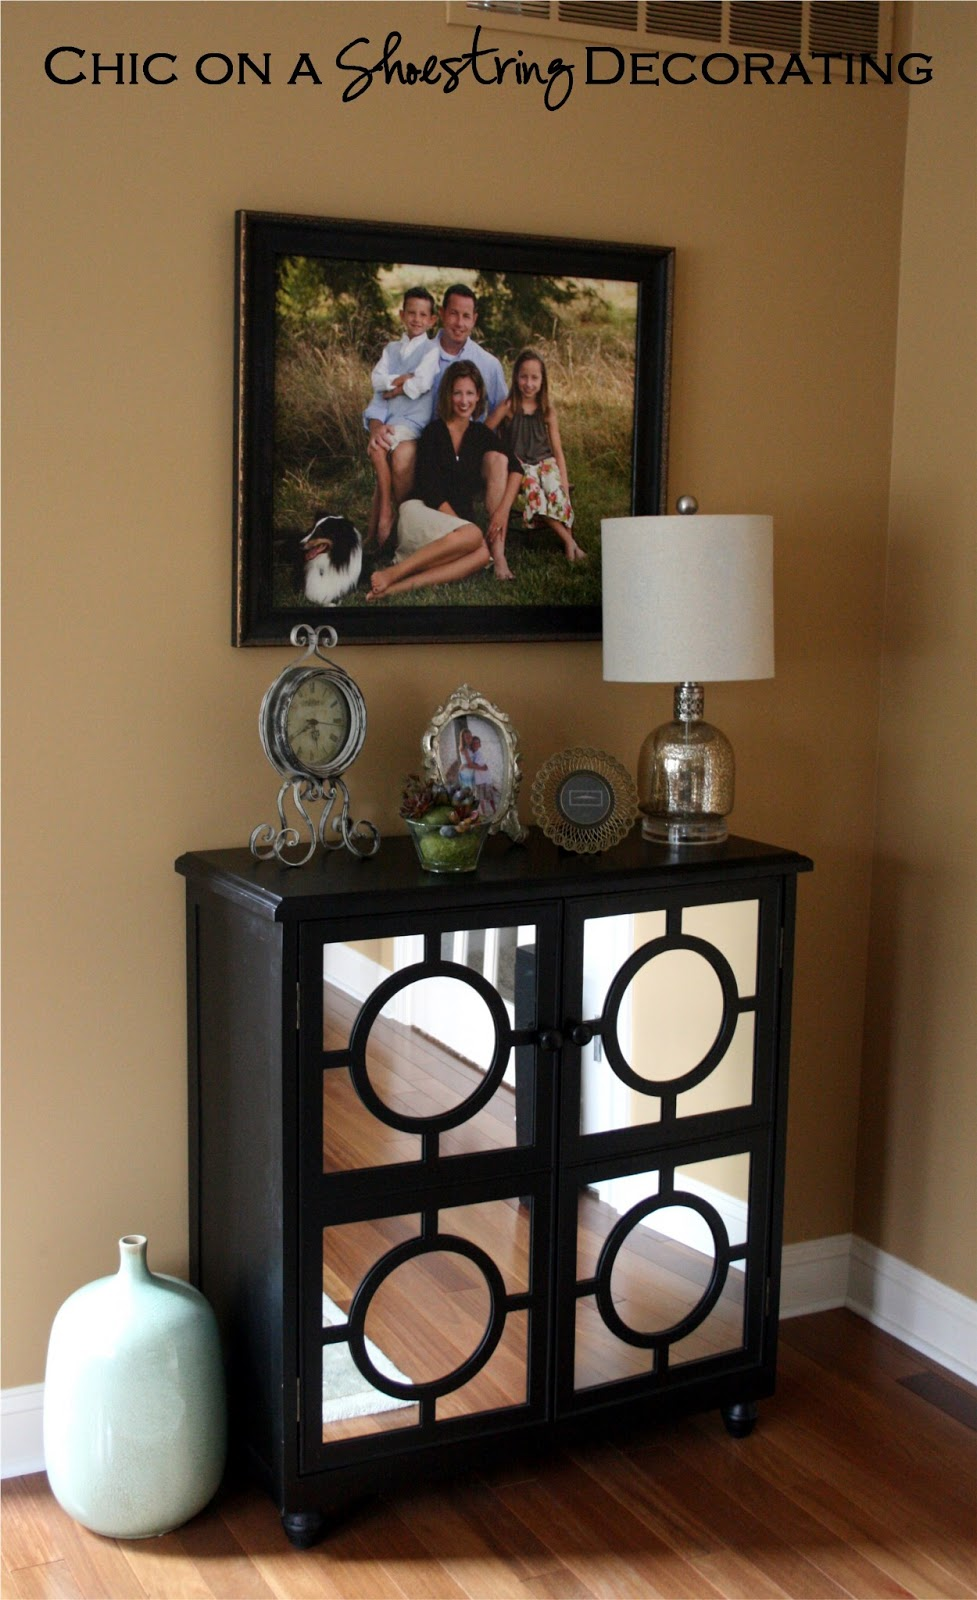 Decorating with a piano - Mirrored Table Console Cabinet Chic On A Shoestring Decorating